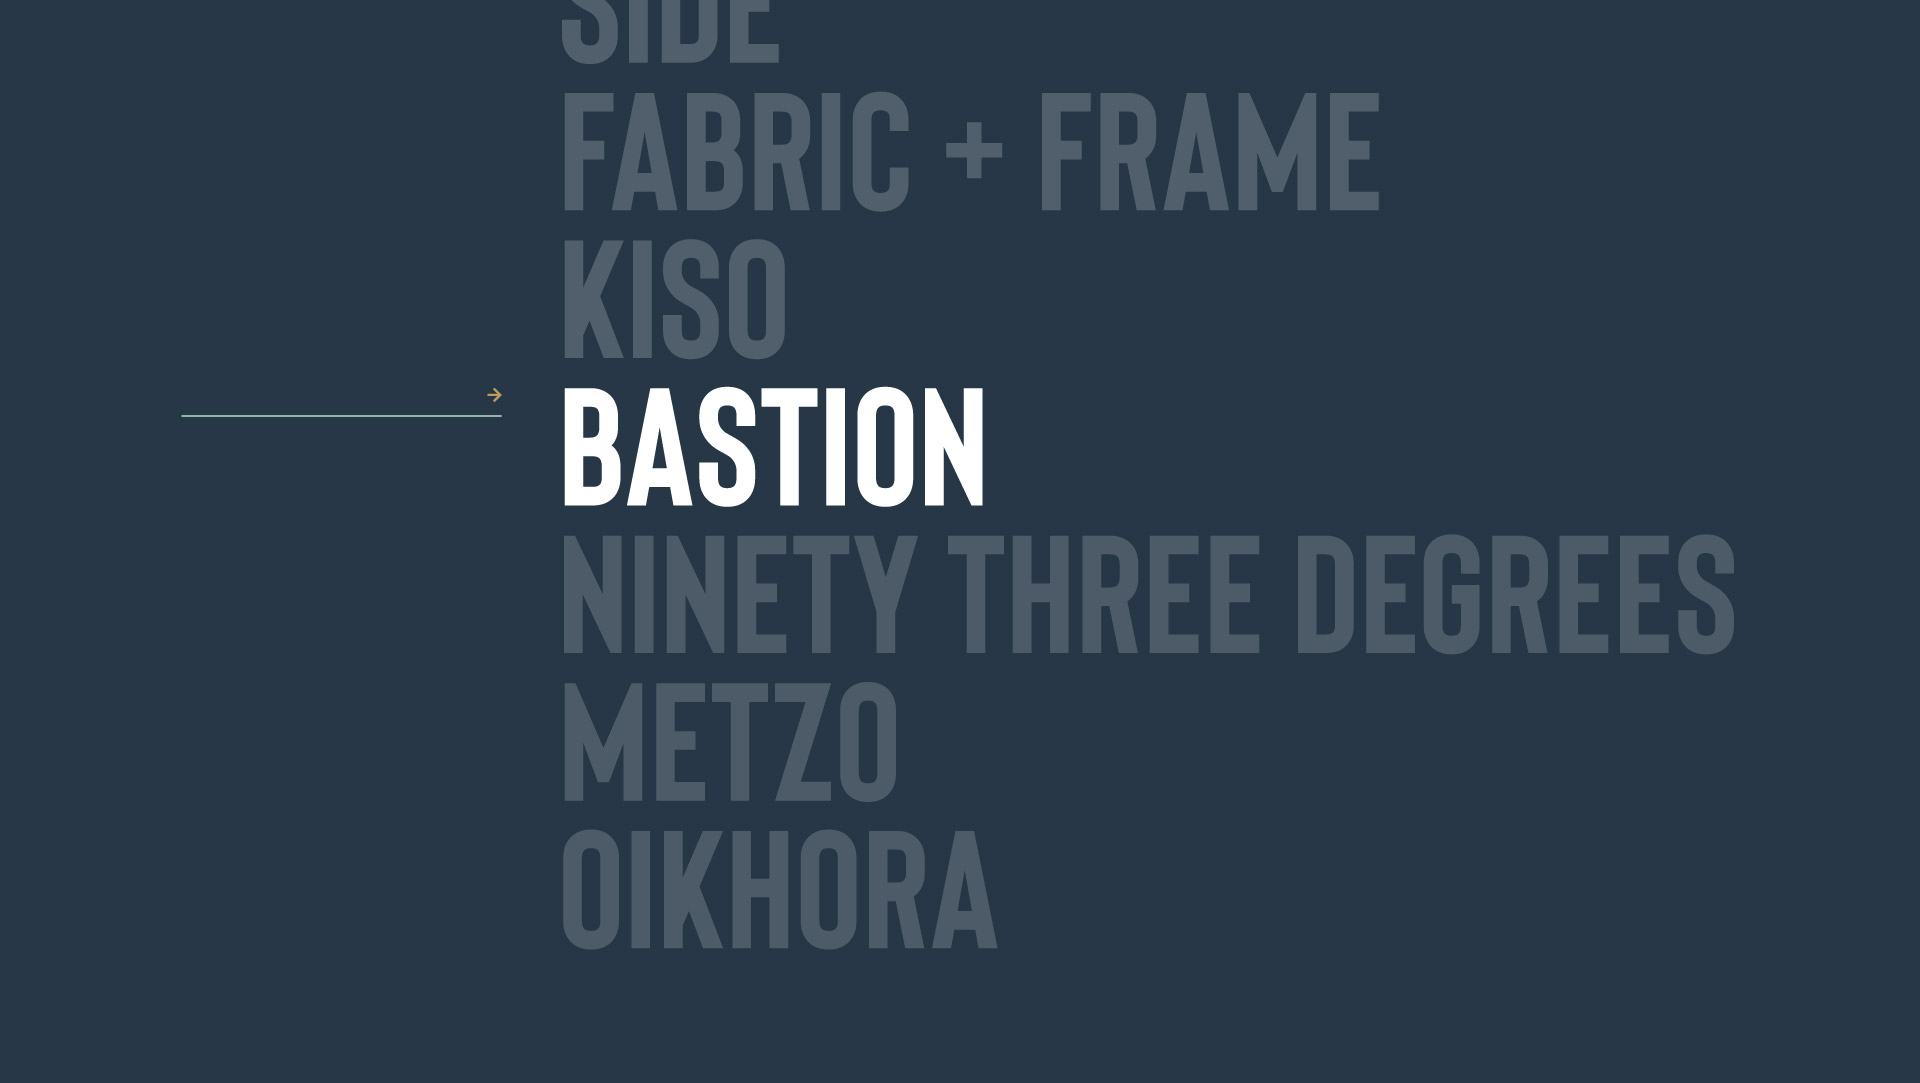 Architects branding - showcasing the brand name, Bastion Architects.